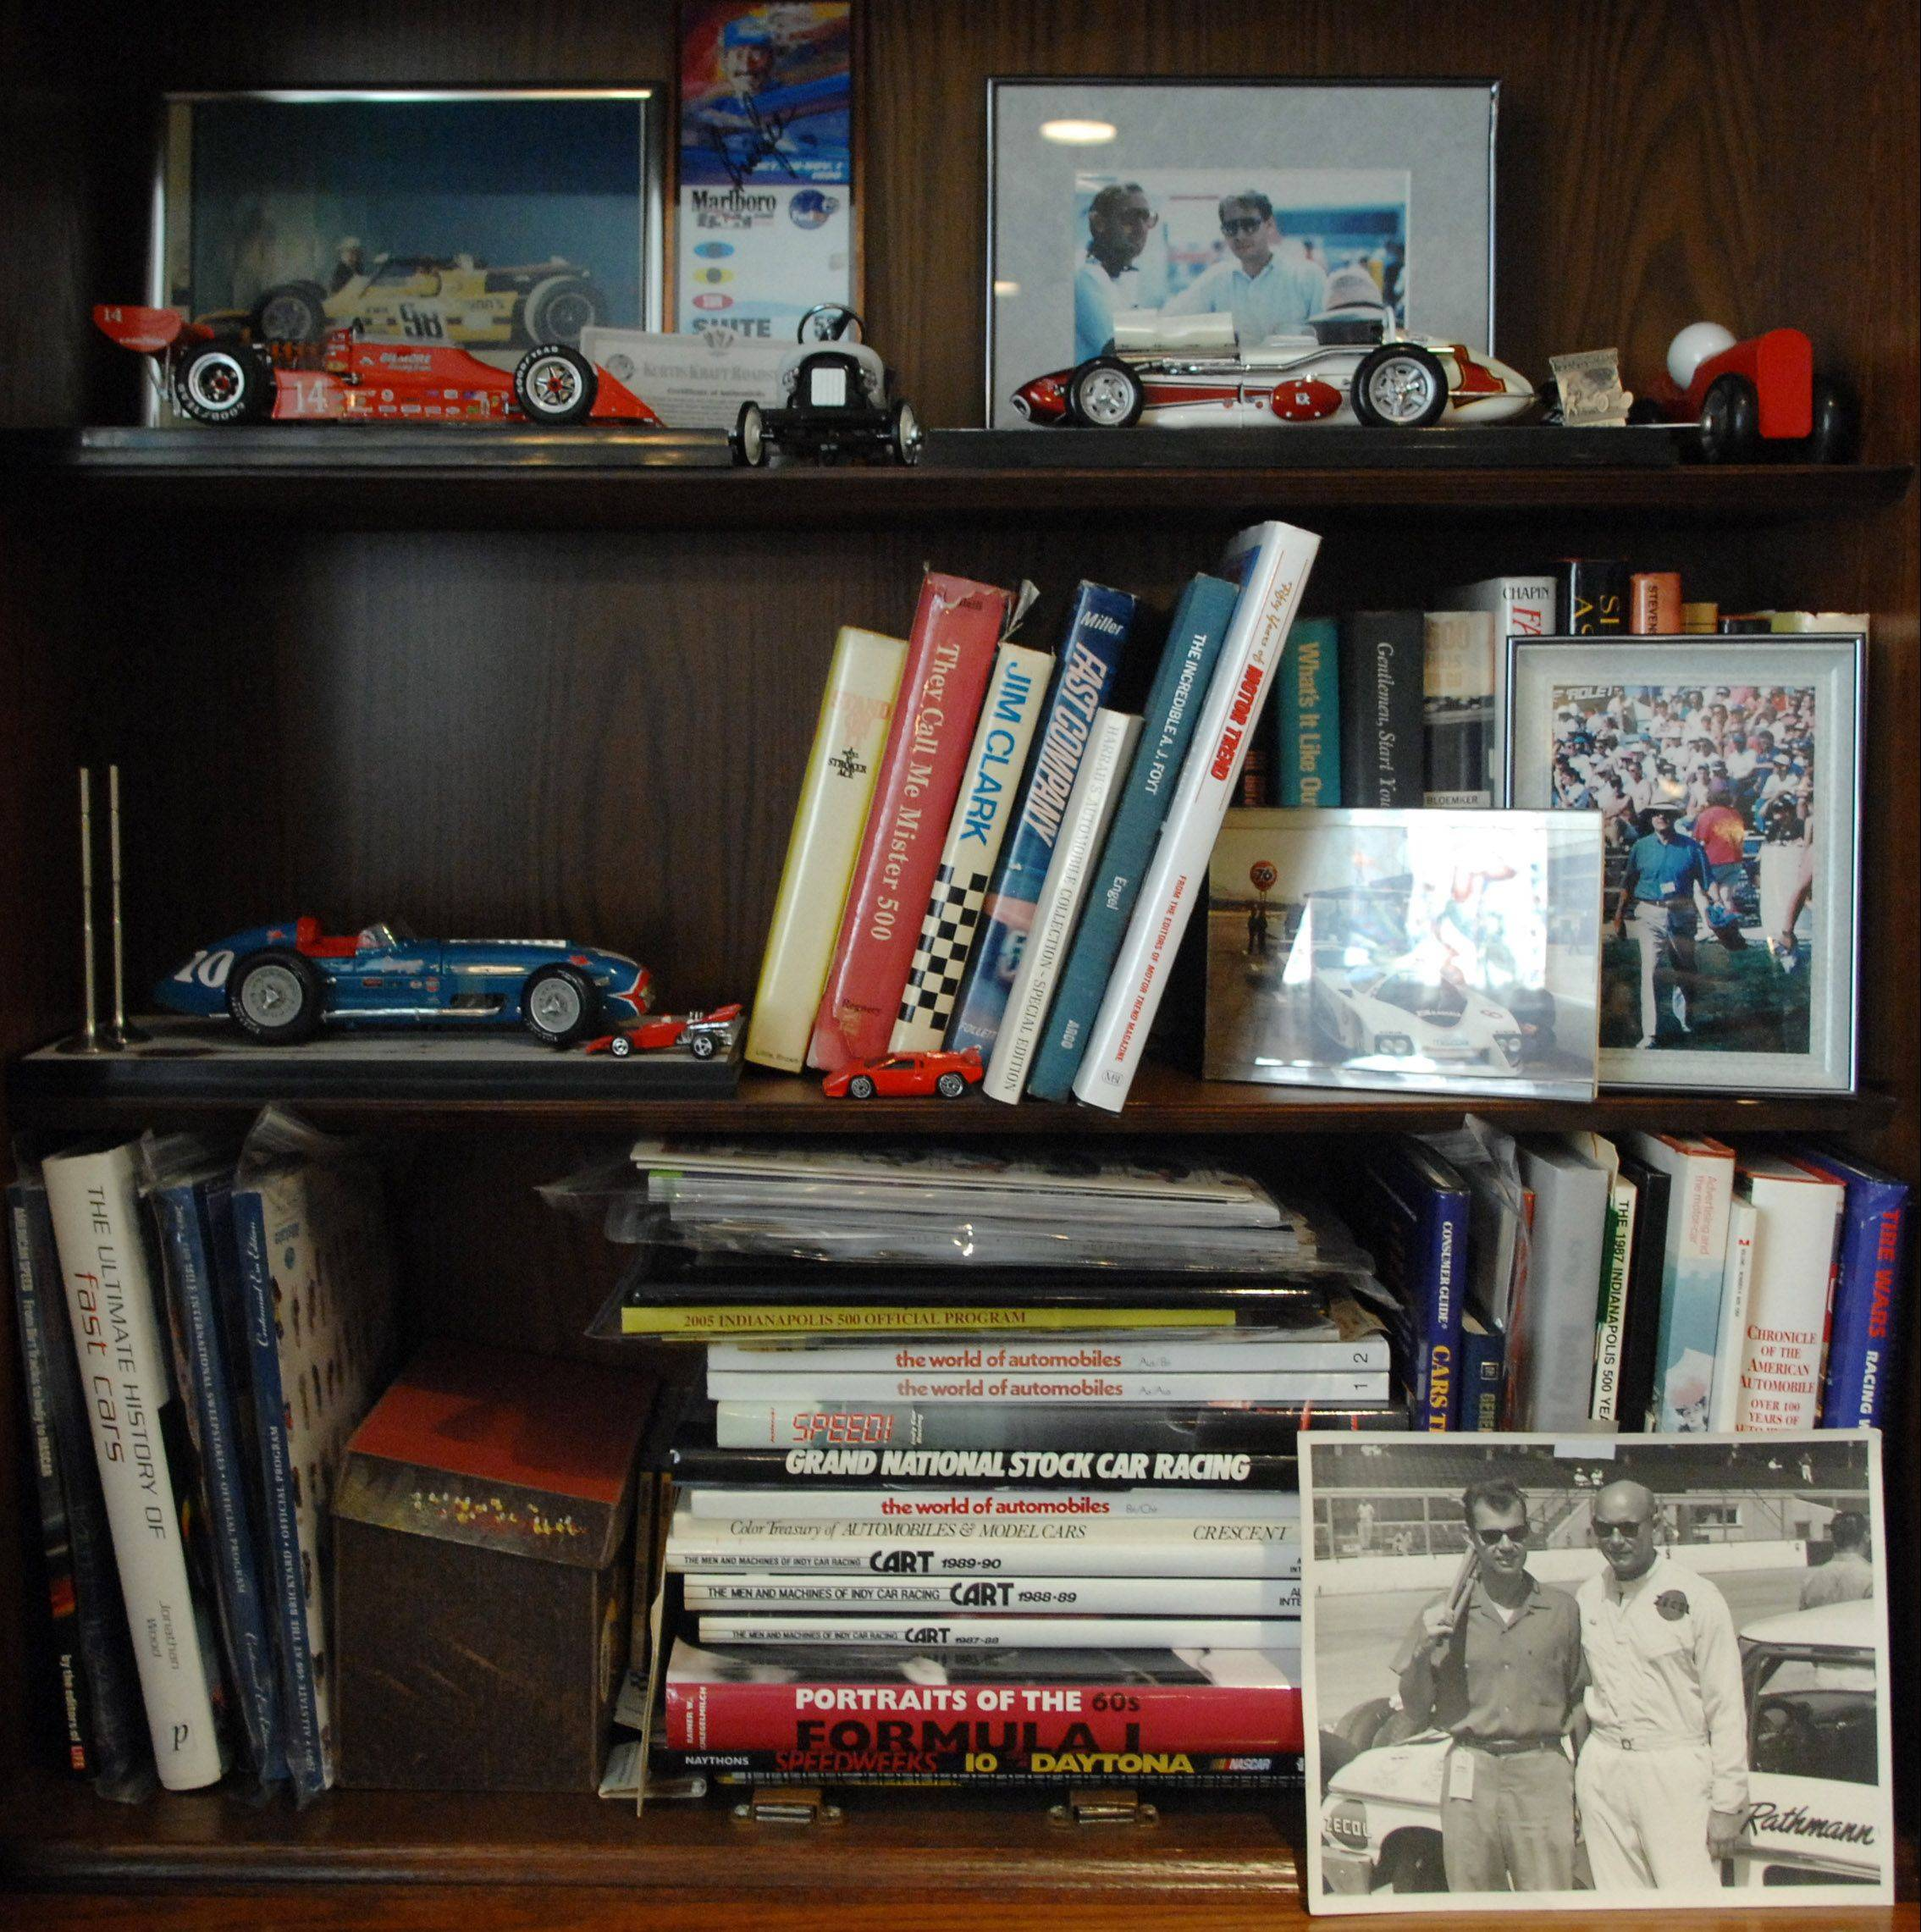 Marshall Schneider, 82, of West Dundee shows a small sample of the collection of memorabilia he's amassed in the years since attending his first Indianapolis 500 in 1949 as a teenager who loved cars.